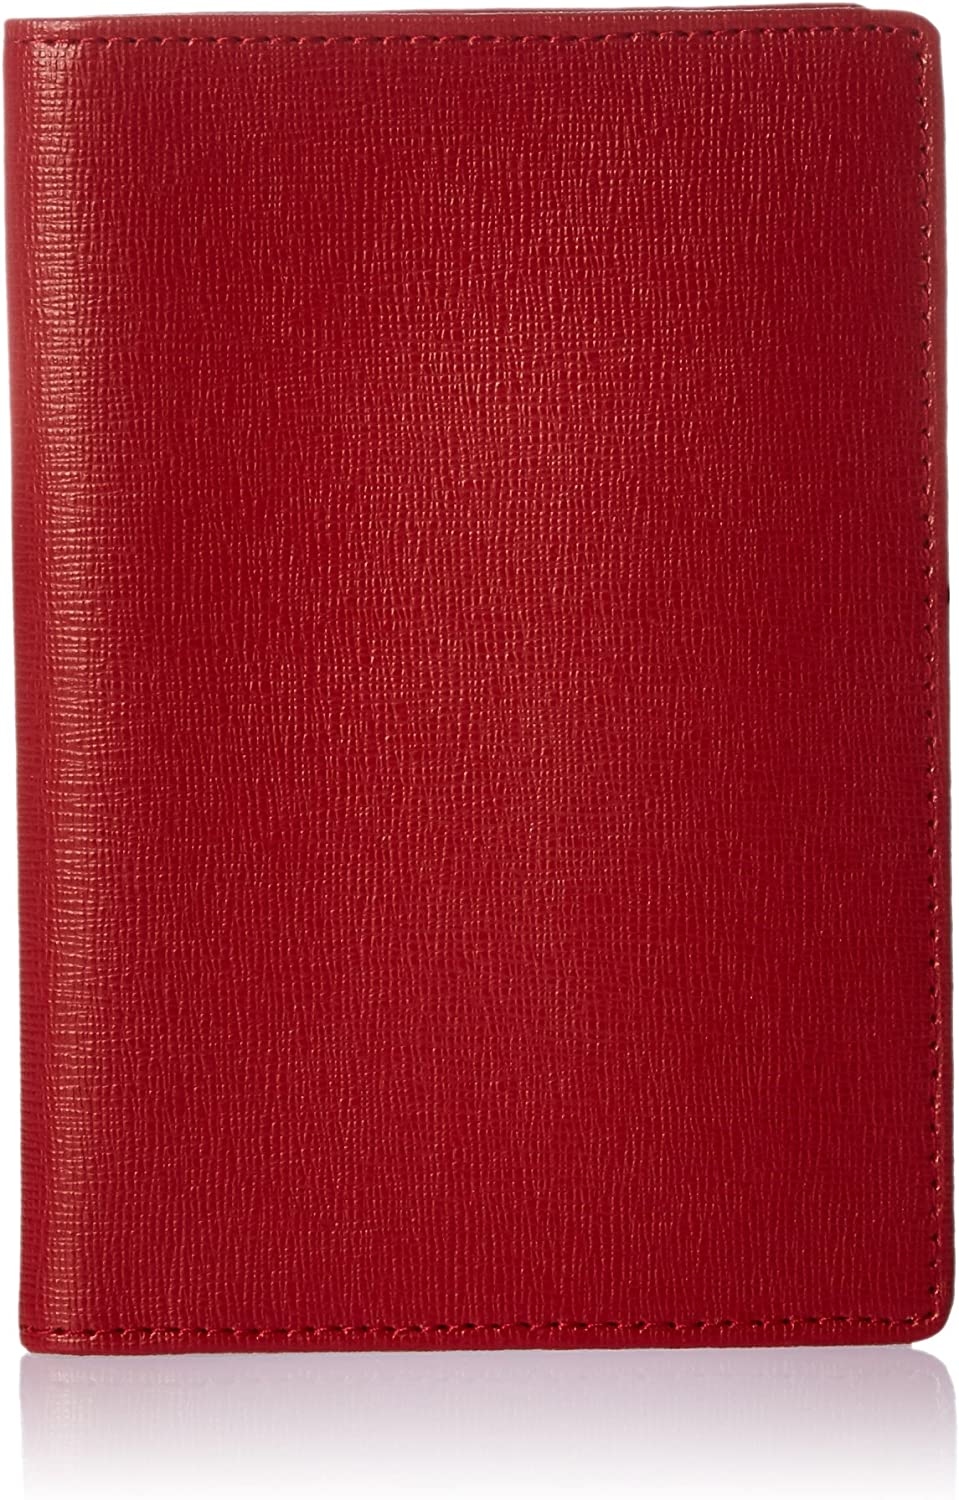 Royce Leather RFID Blocking Passport in Document Wallet Challenge the lowest price of Japan ☆ Max 89% OFF Saffiano